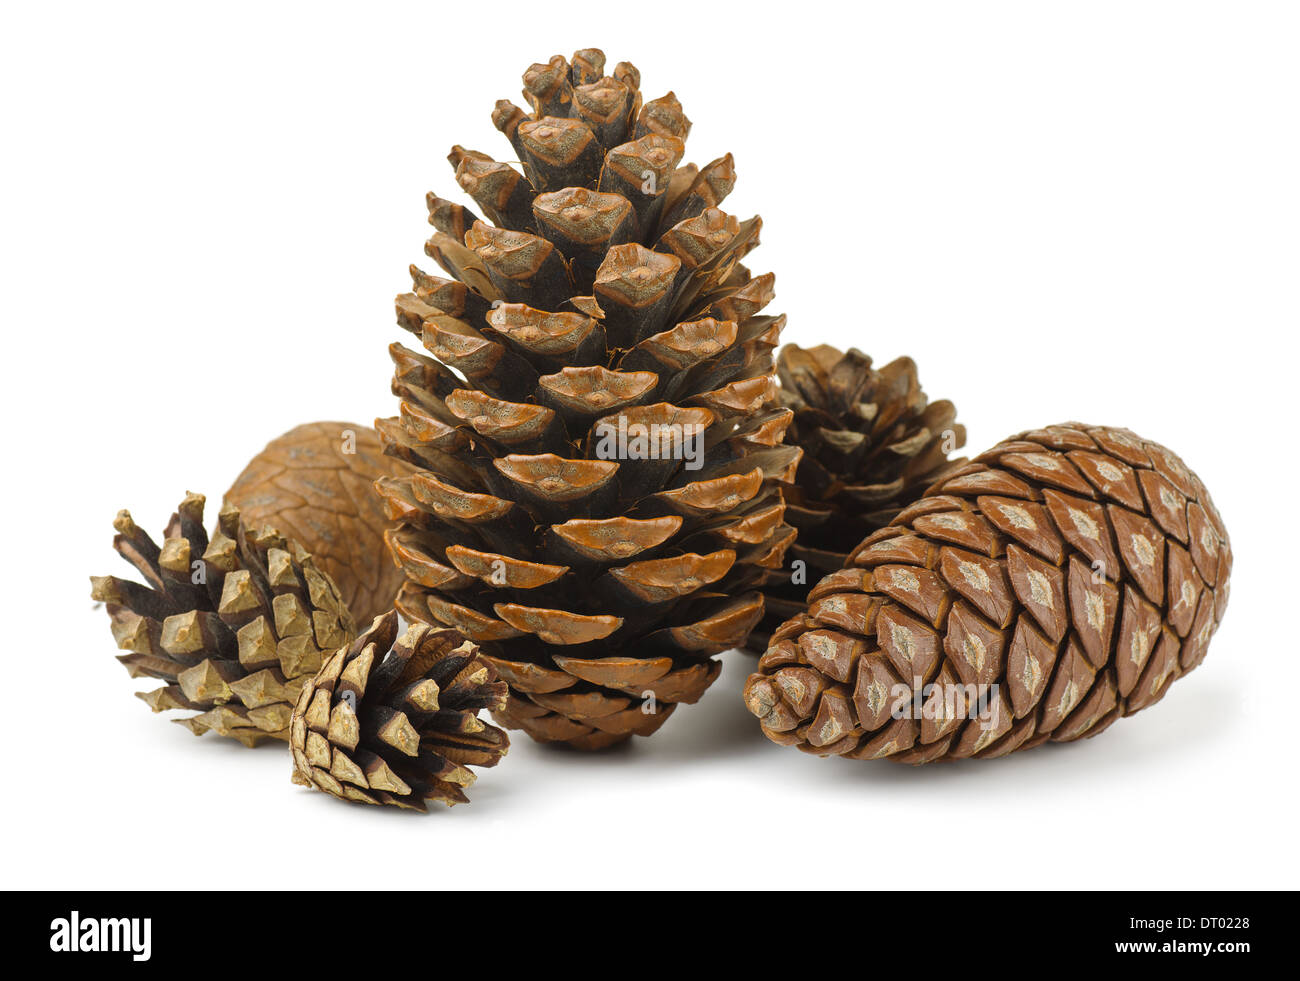 Group of various conifer cones isolated on white - Stock Image